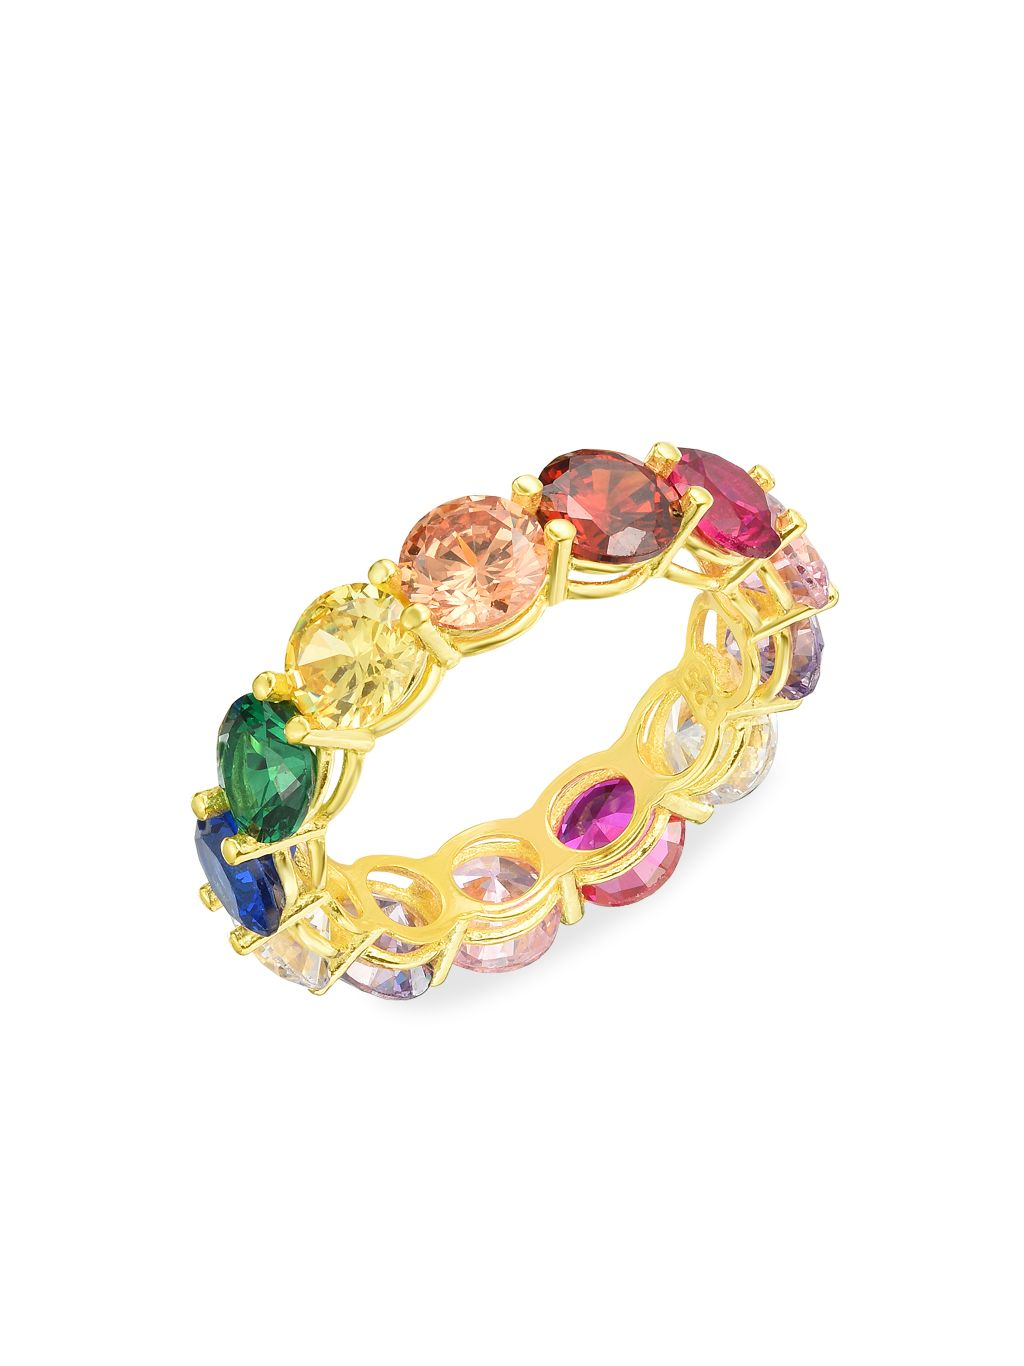 Chloe & Madison 14K Goldplated Sterling Silver & Rainbow Crystal Eternity Band Ring